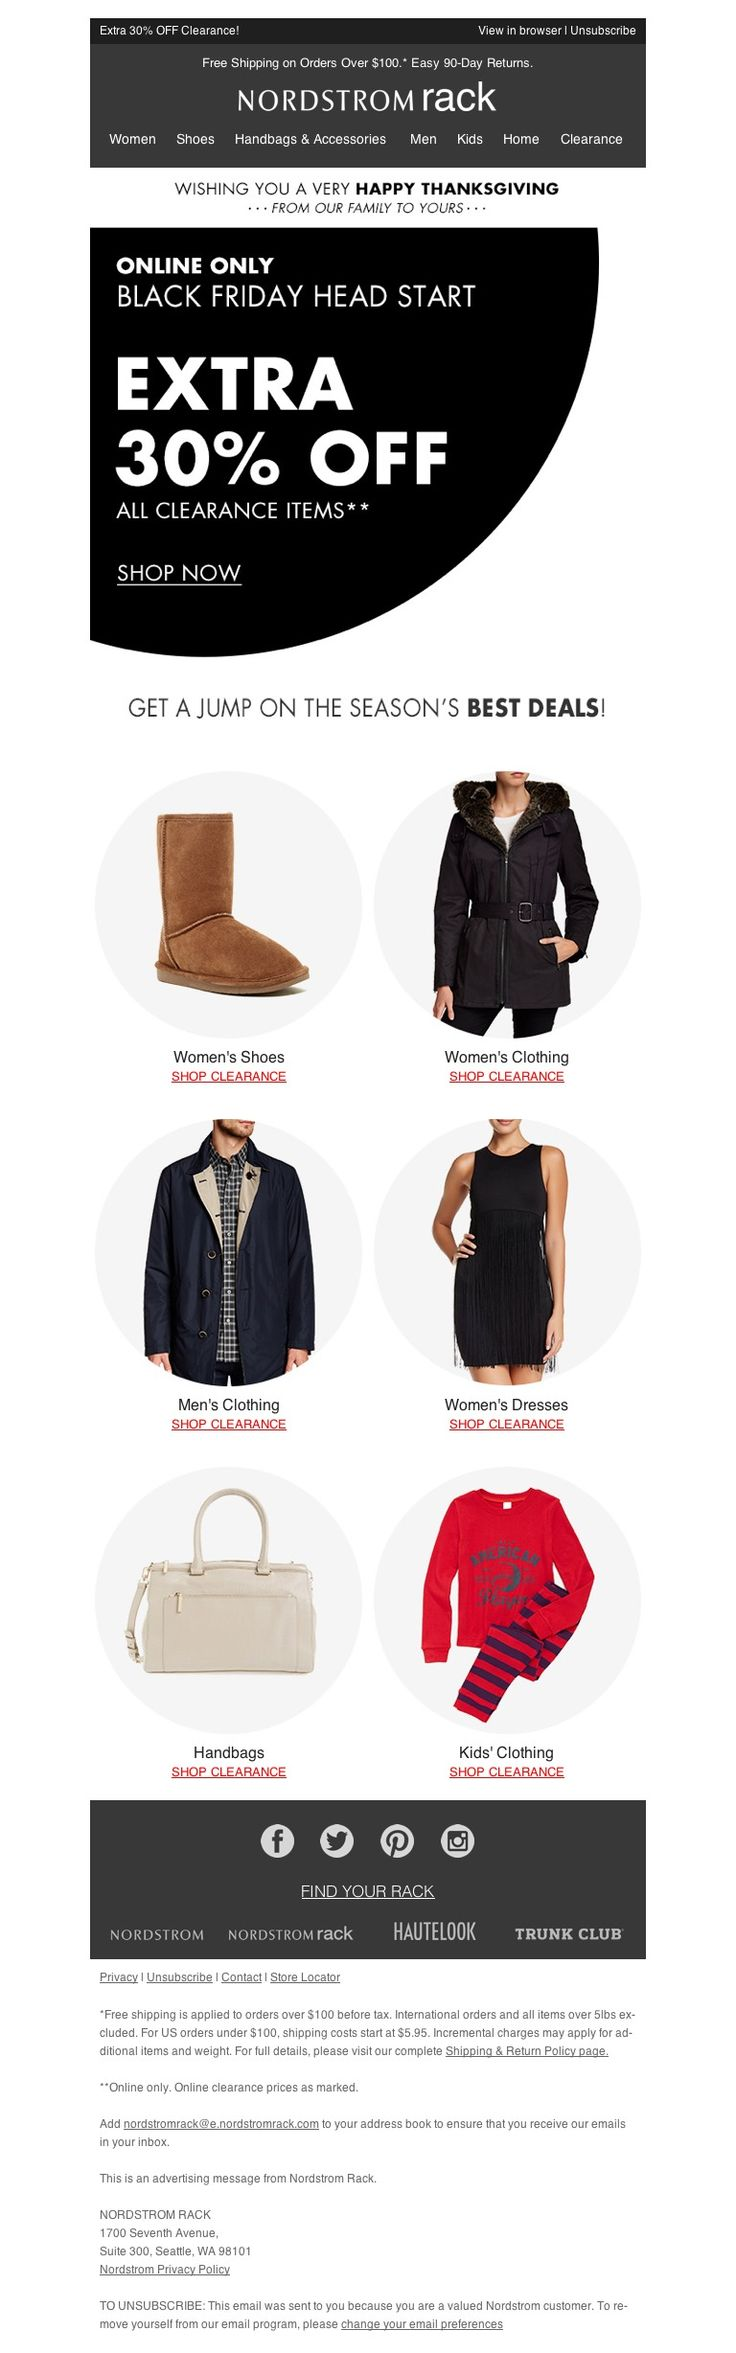 Nordstrom Rack -  11/26/15 SL: Head Start: Black Friday Weekend!